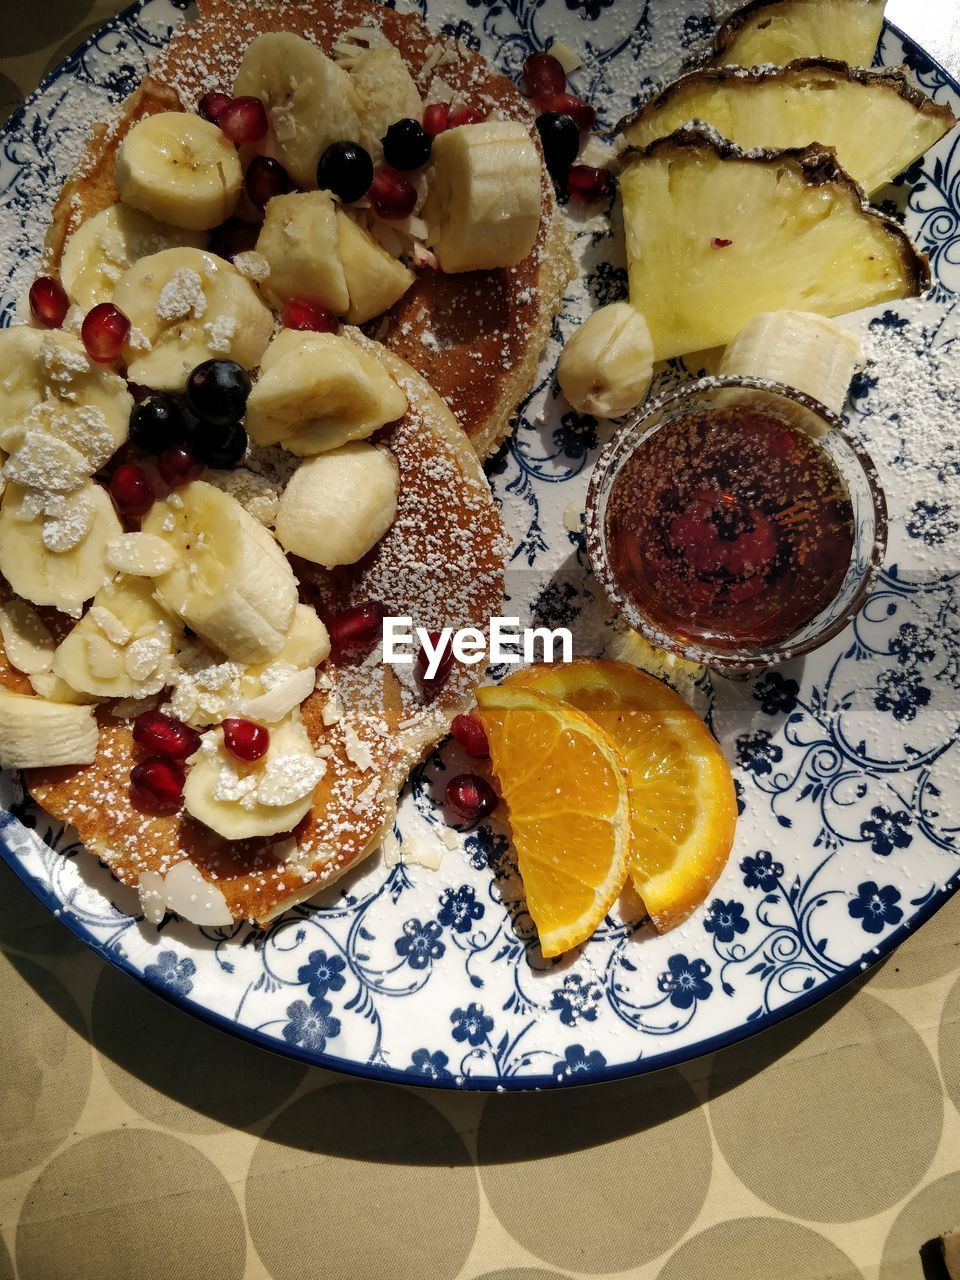 food, food and drink, fruit, freshness, indoors, still life, ready-to-eat, indulgence, high angle view, healthy eating, no people, sweet food, sweet, directly above, citrus fruit, dessert, close-up, plate, table, temptation, breakfast, snack